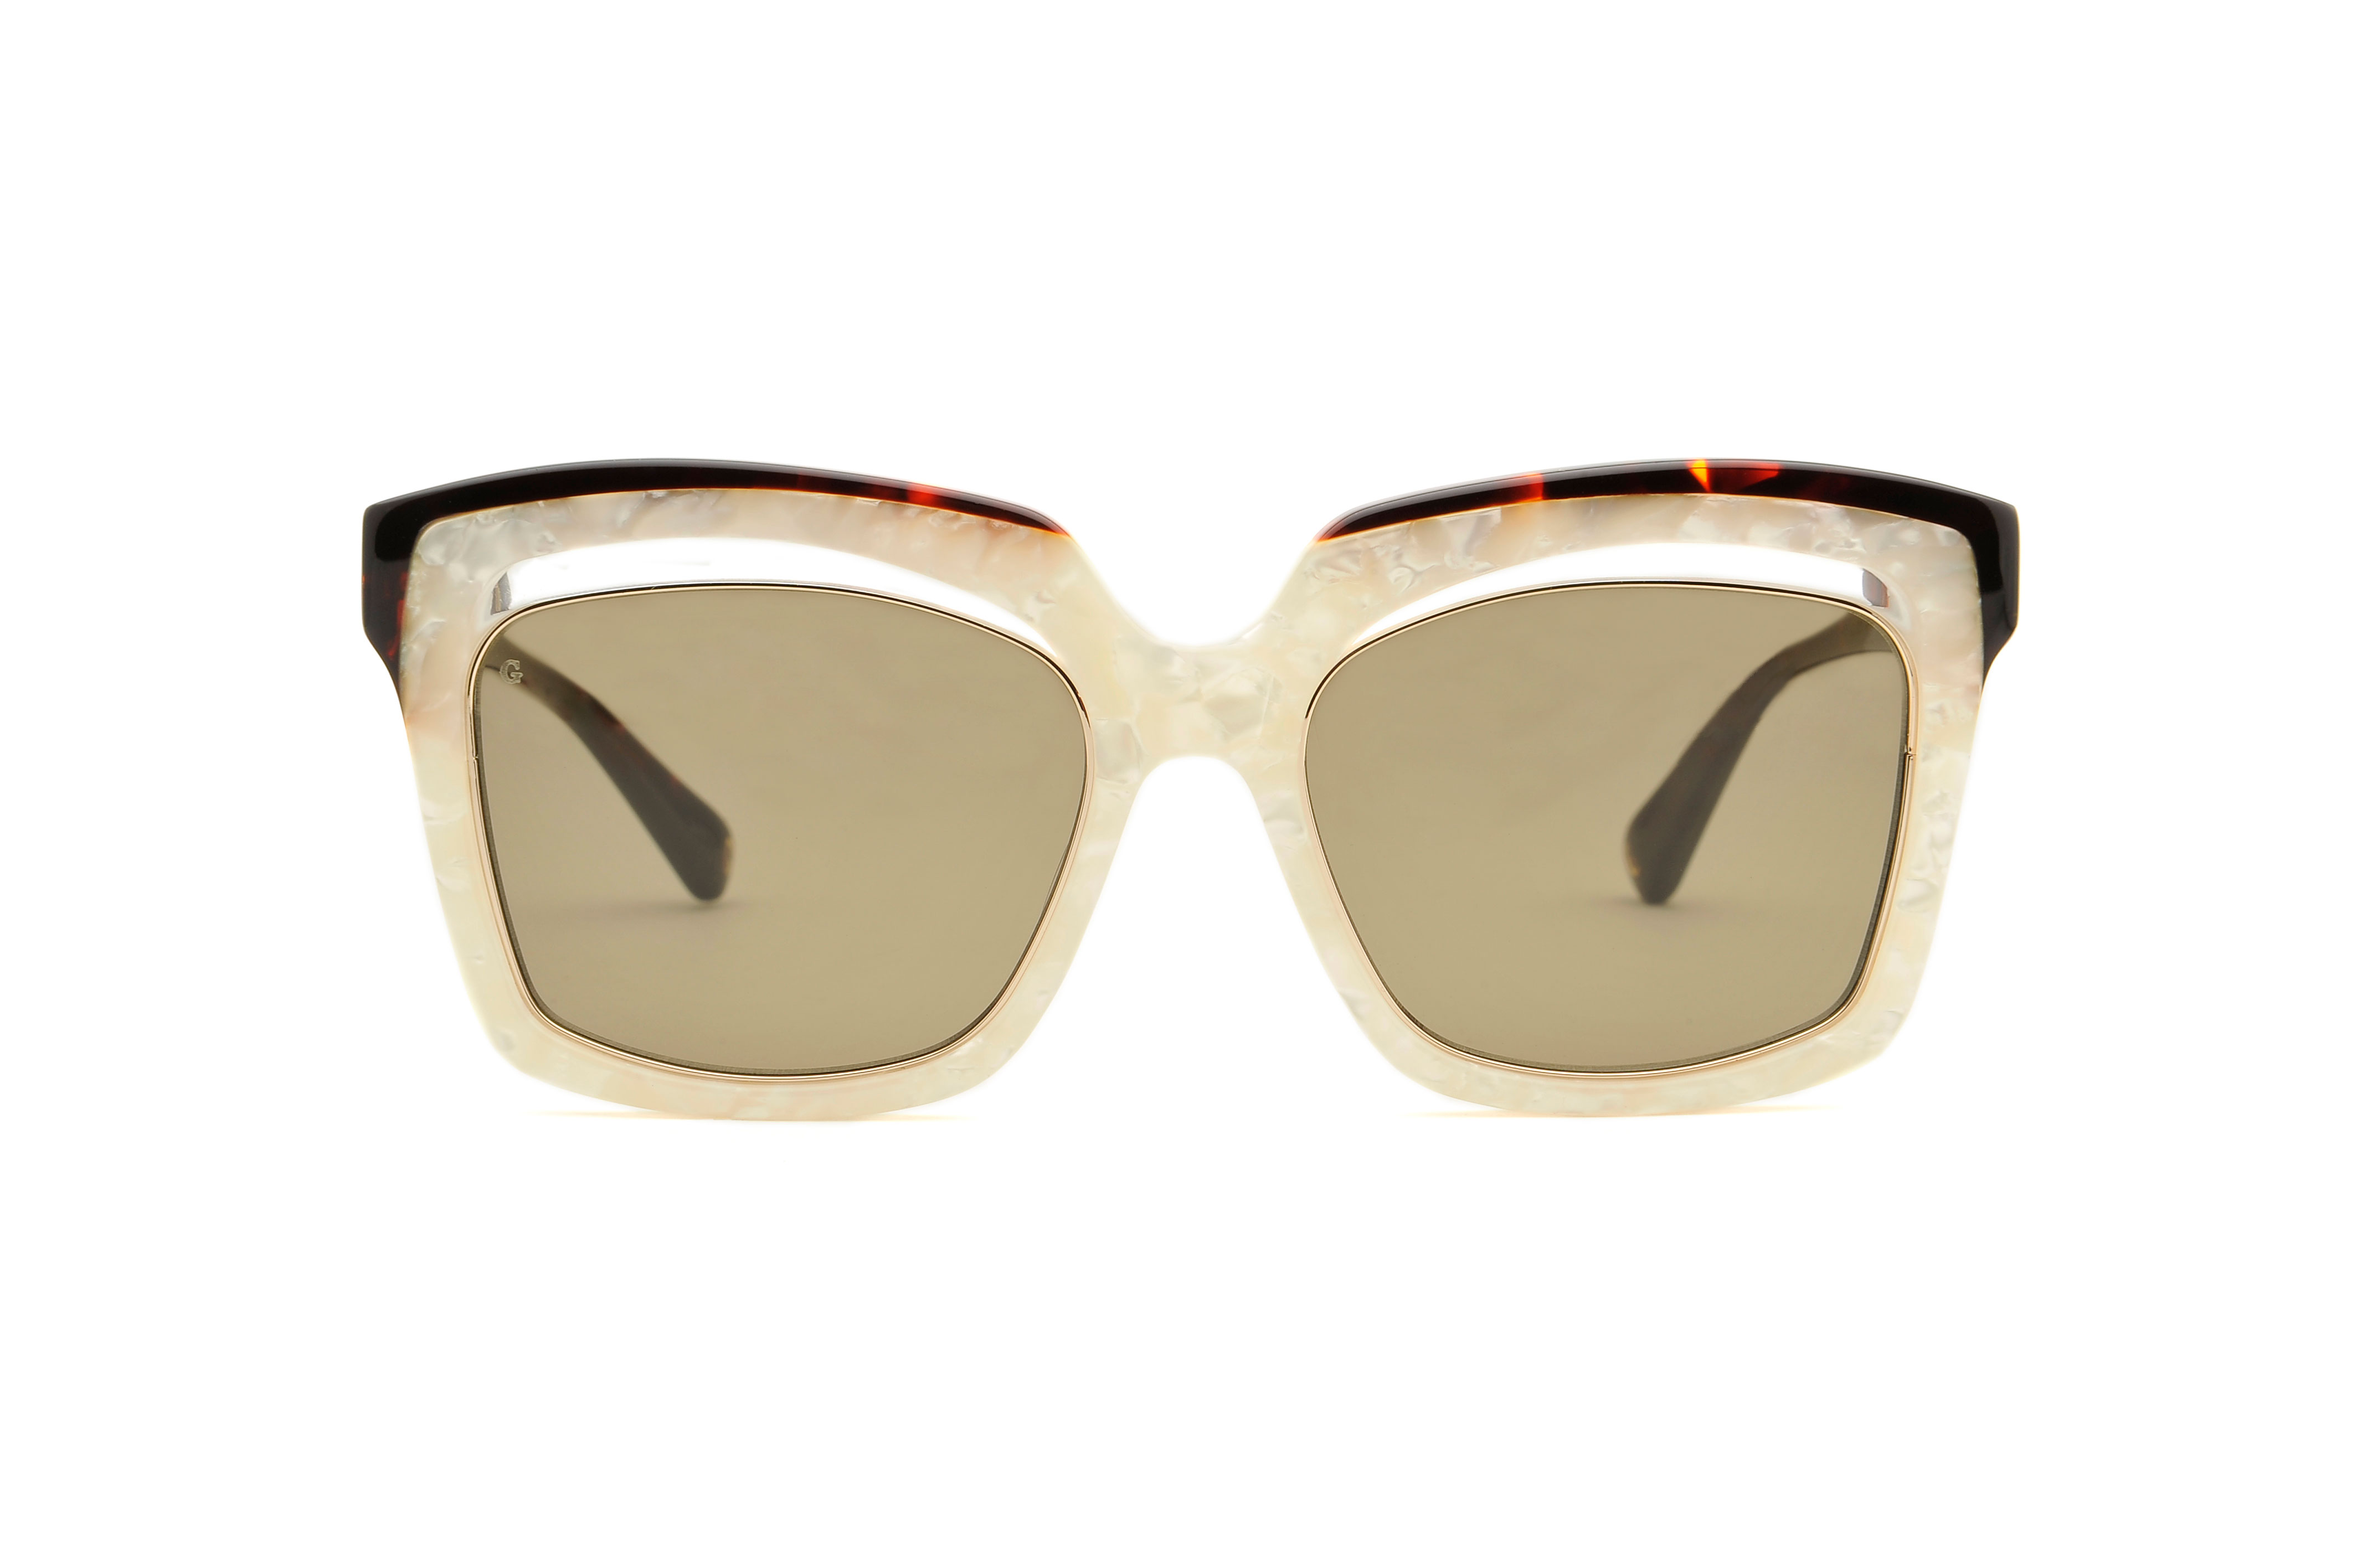 Bella acetate squared white sunglasses by GIGI Studios